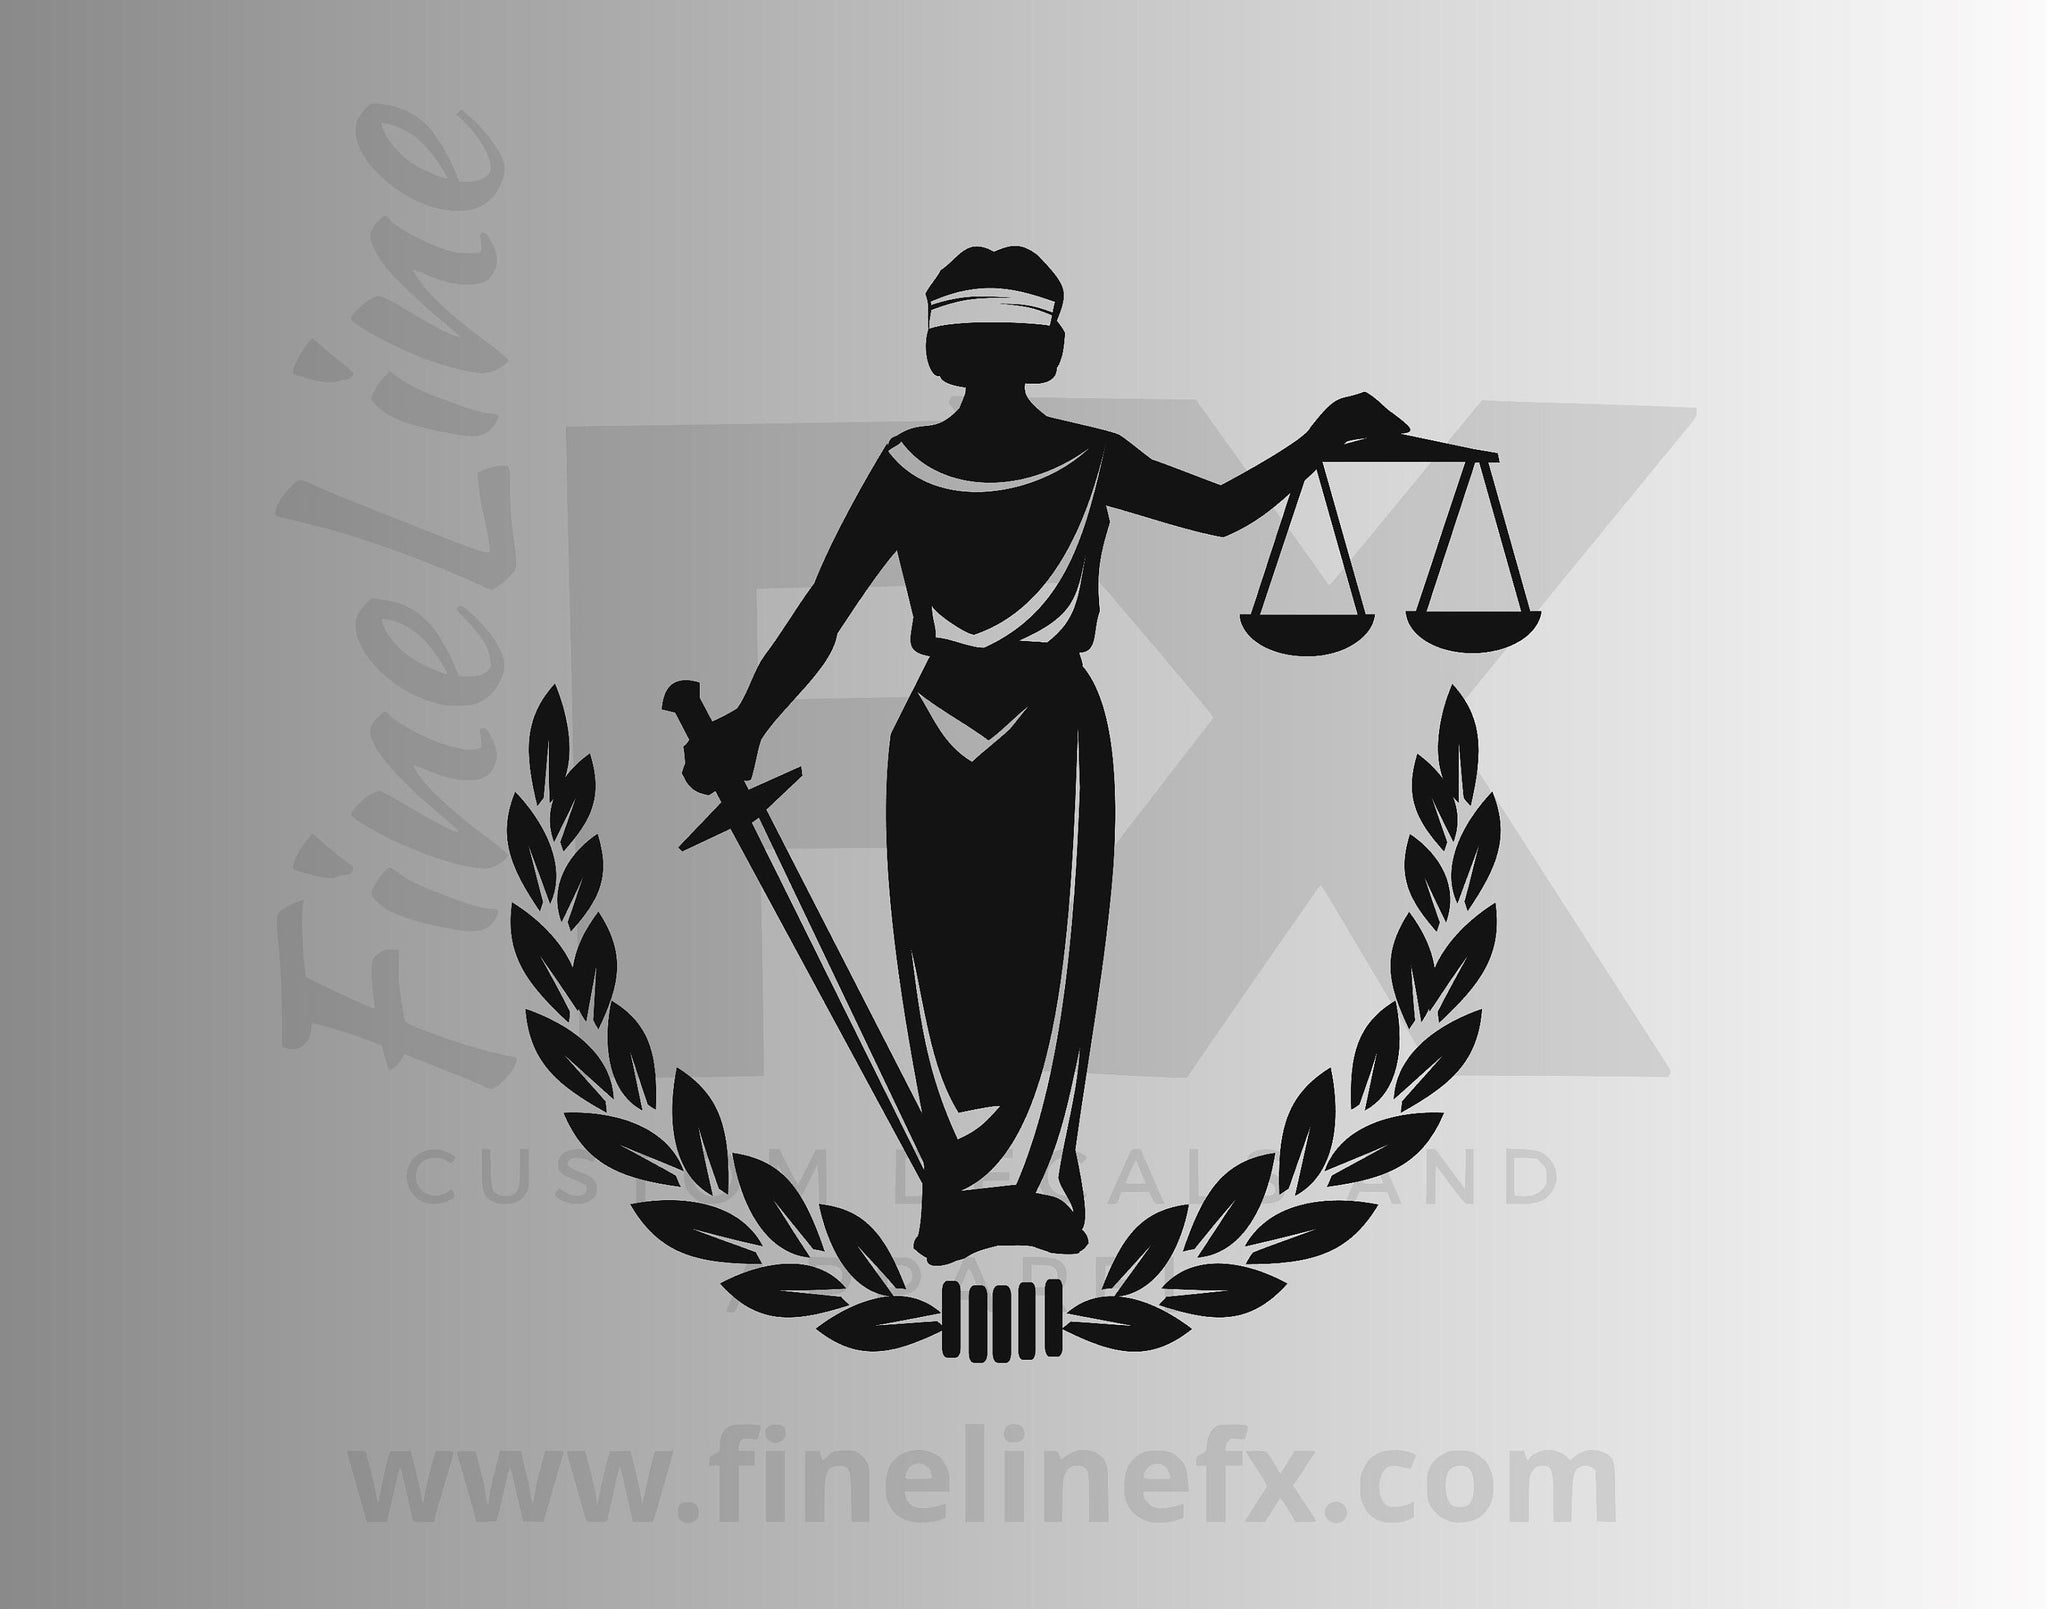 Blind Lady Justice With Law Scales And Sword Vinyl Decal Sticker